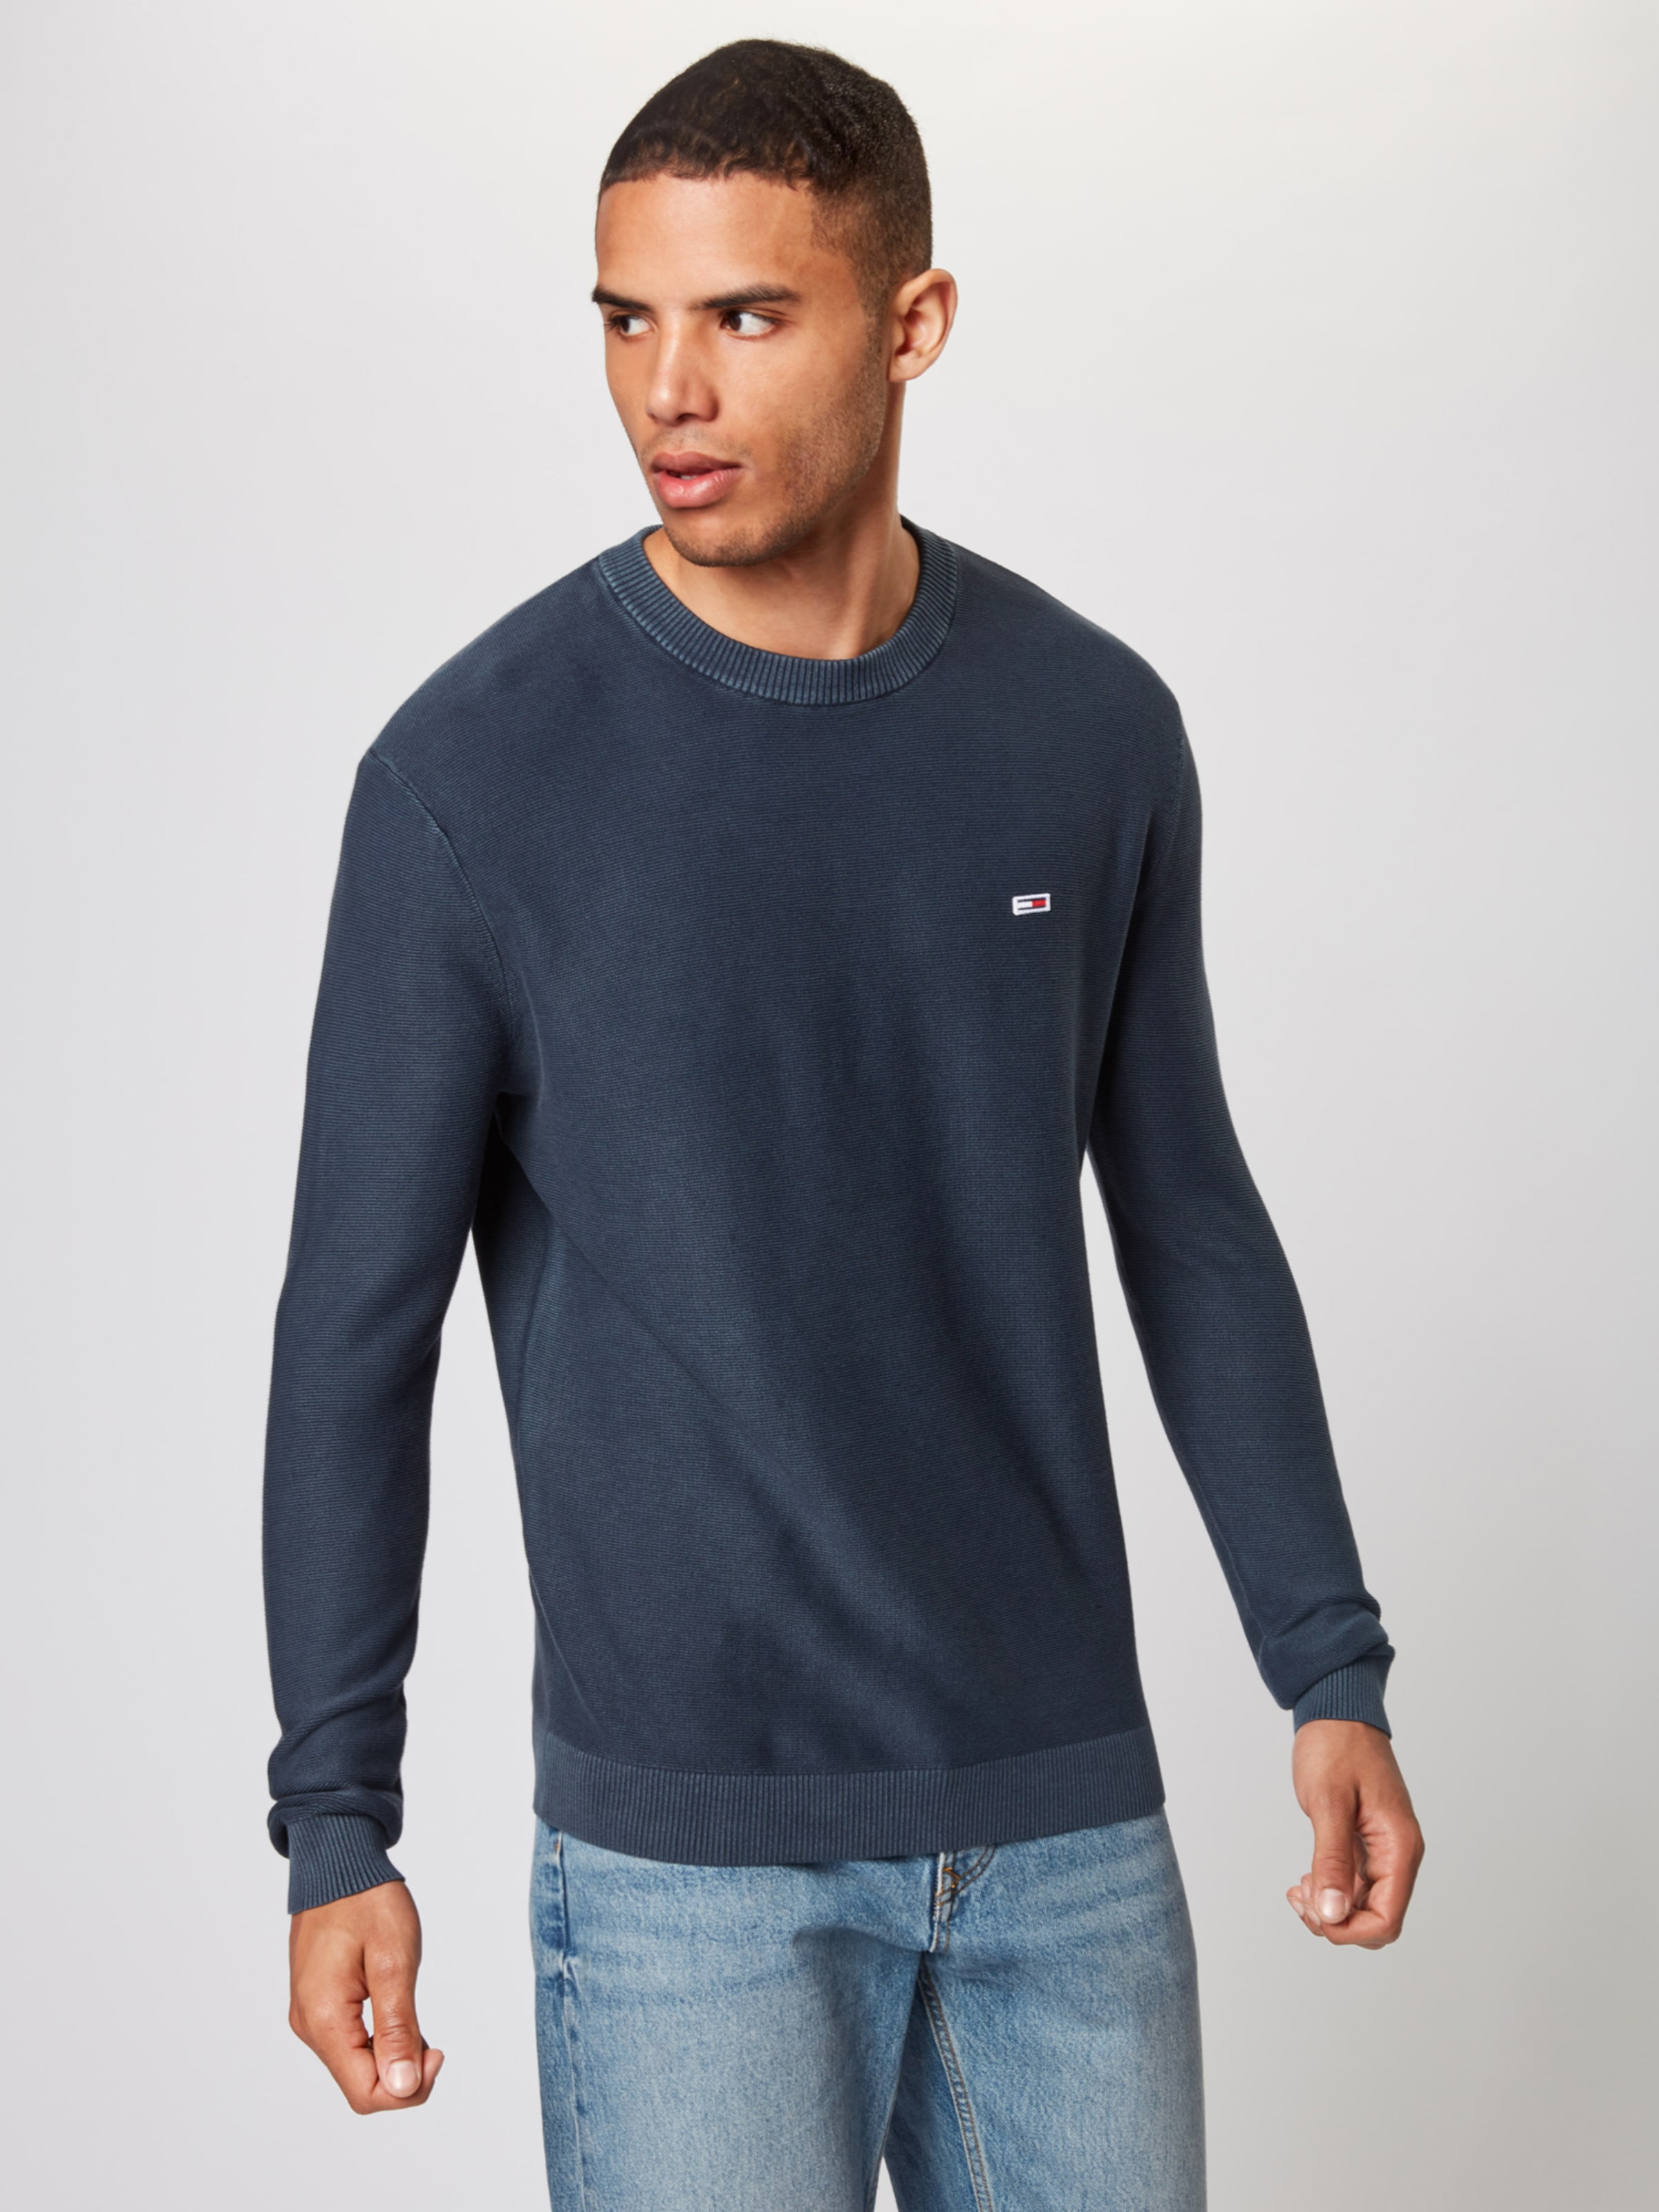 Jeans In Tommy Dunkelblau 'tjm Pullover Washed Sweater' 8nym0wOvN